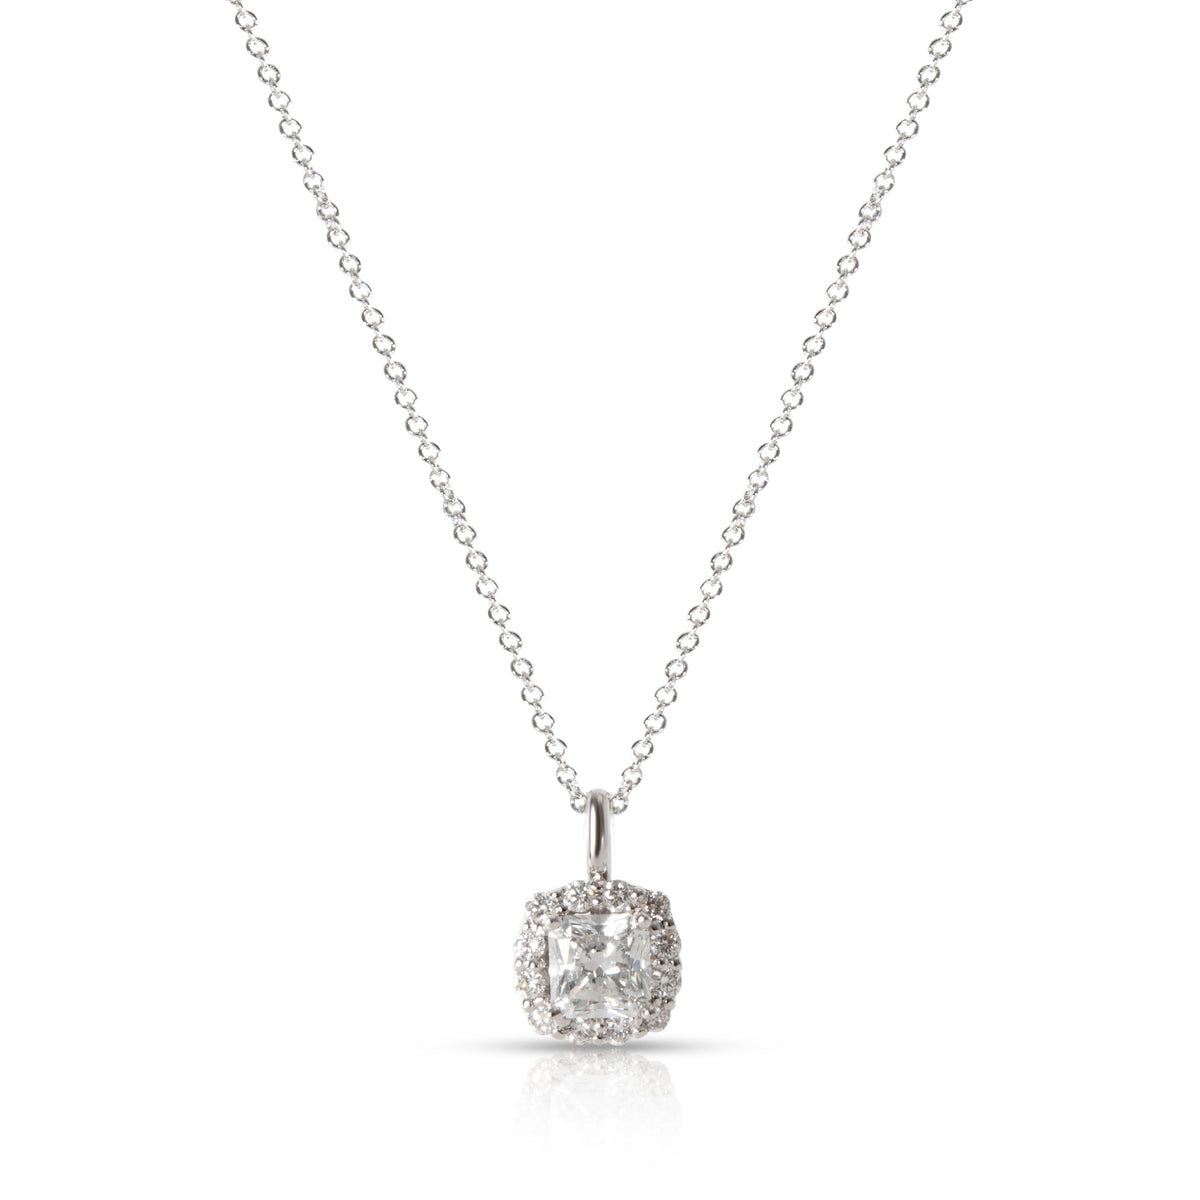 Halo Radiant Diamond Necklace in 14K White Gold GIA Certified D VS2 1.28 CTW